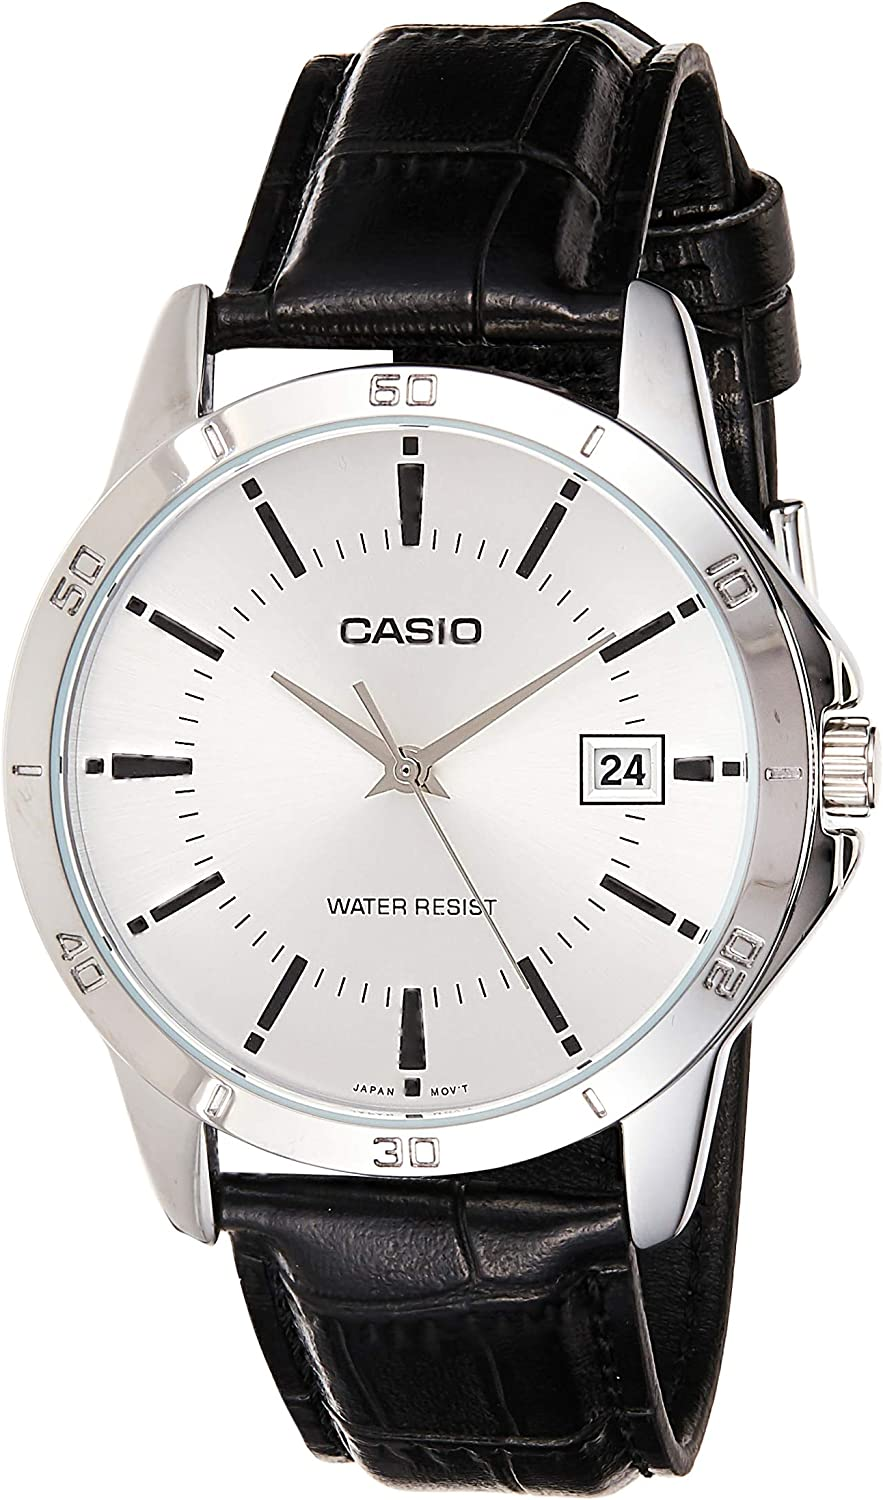 Seiko Men s Analogue Classic Solar Powered Watch with Leather Strap SUP880P1